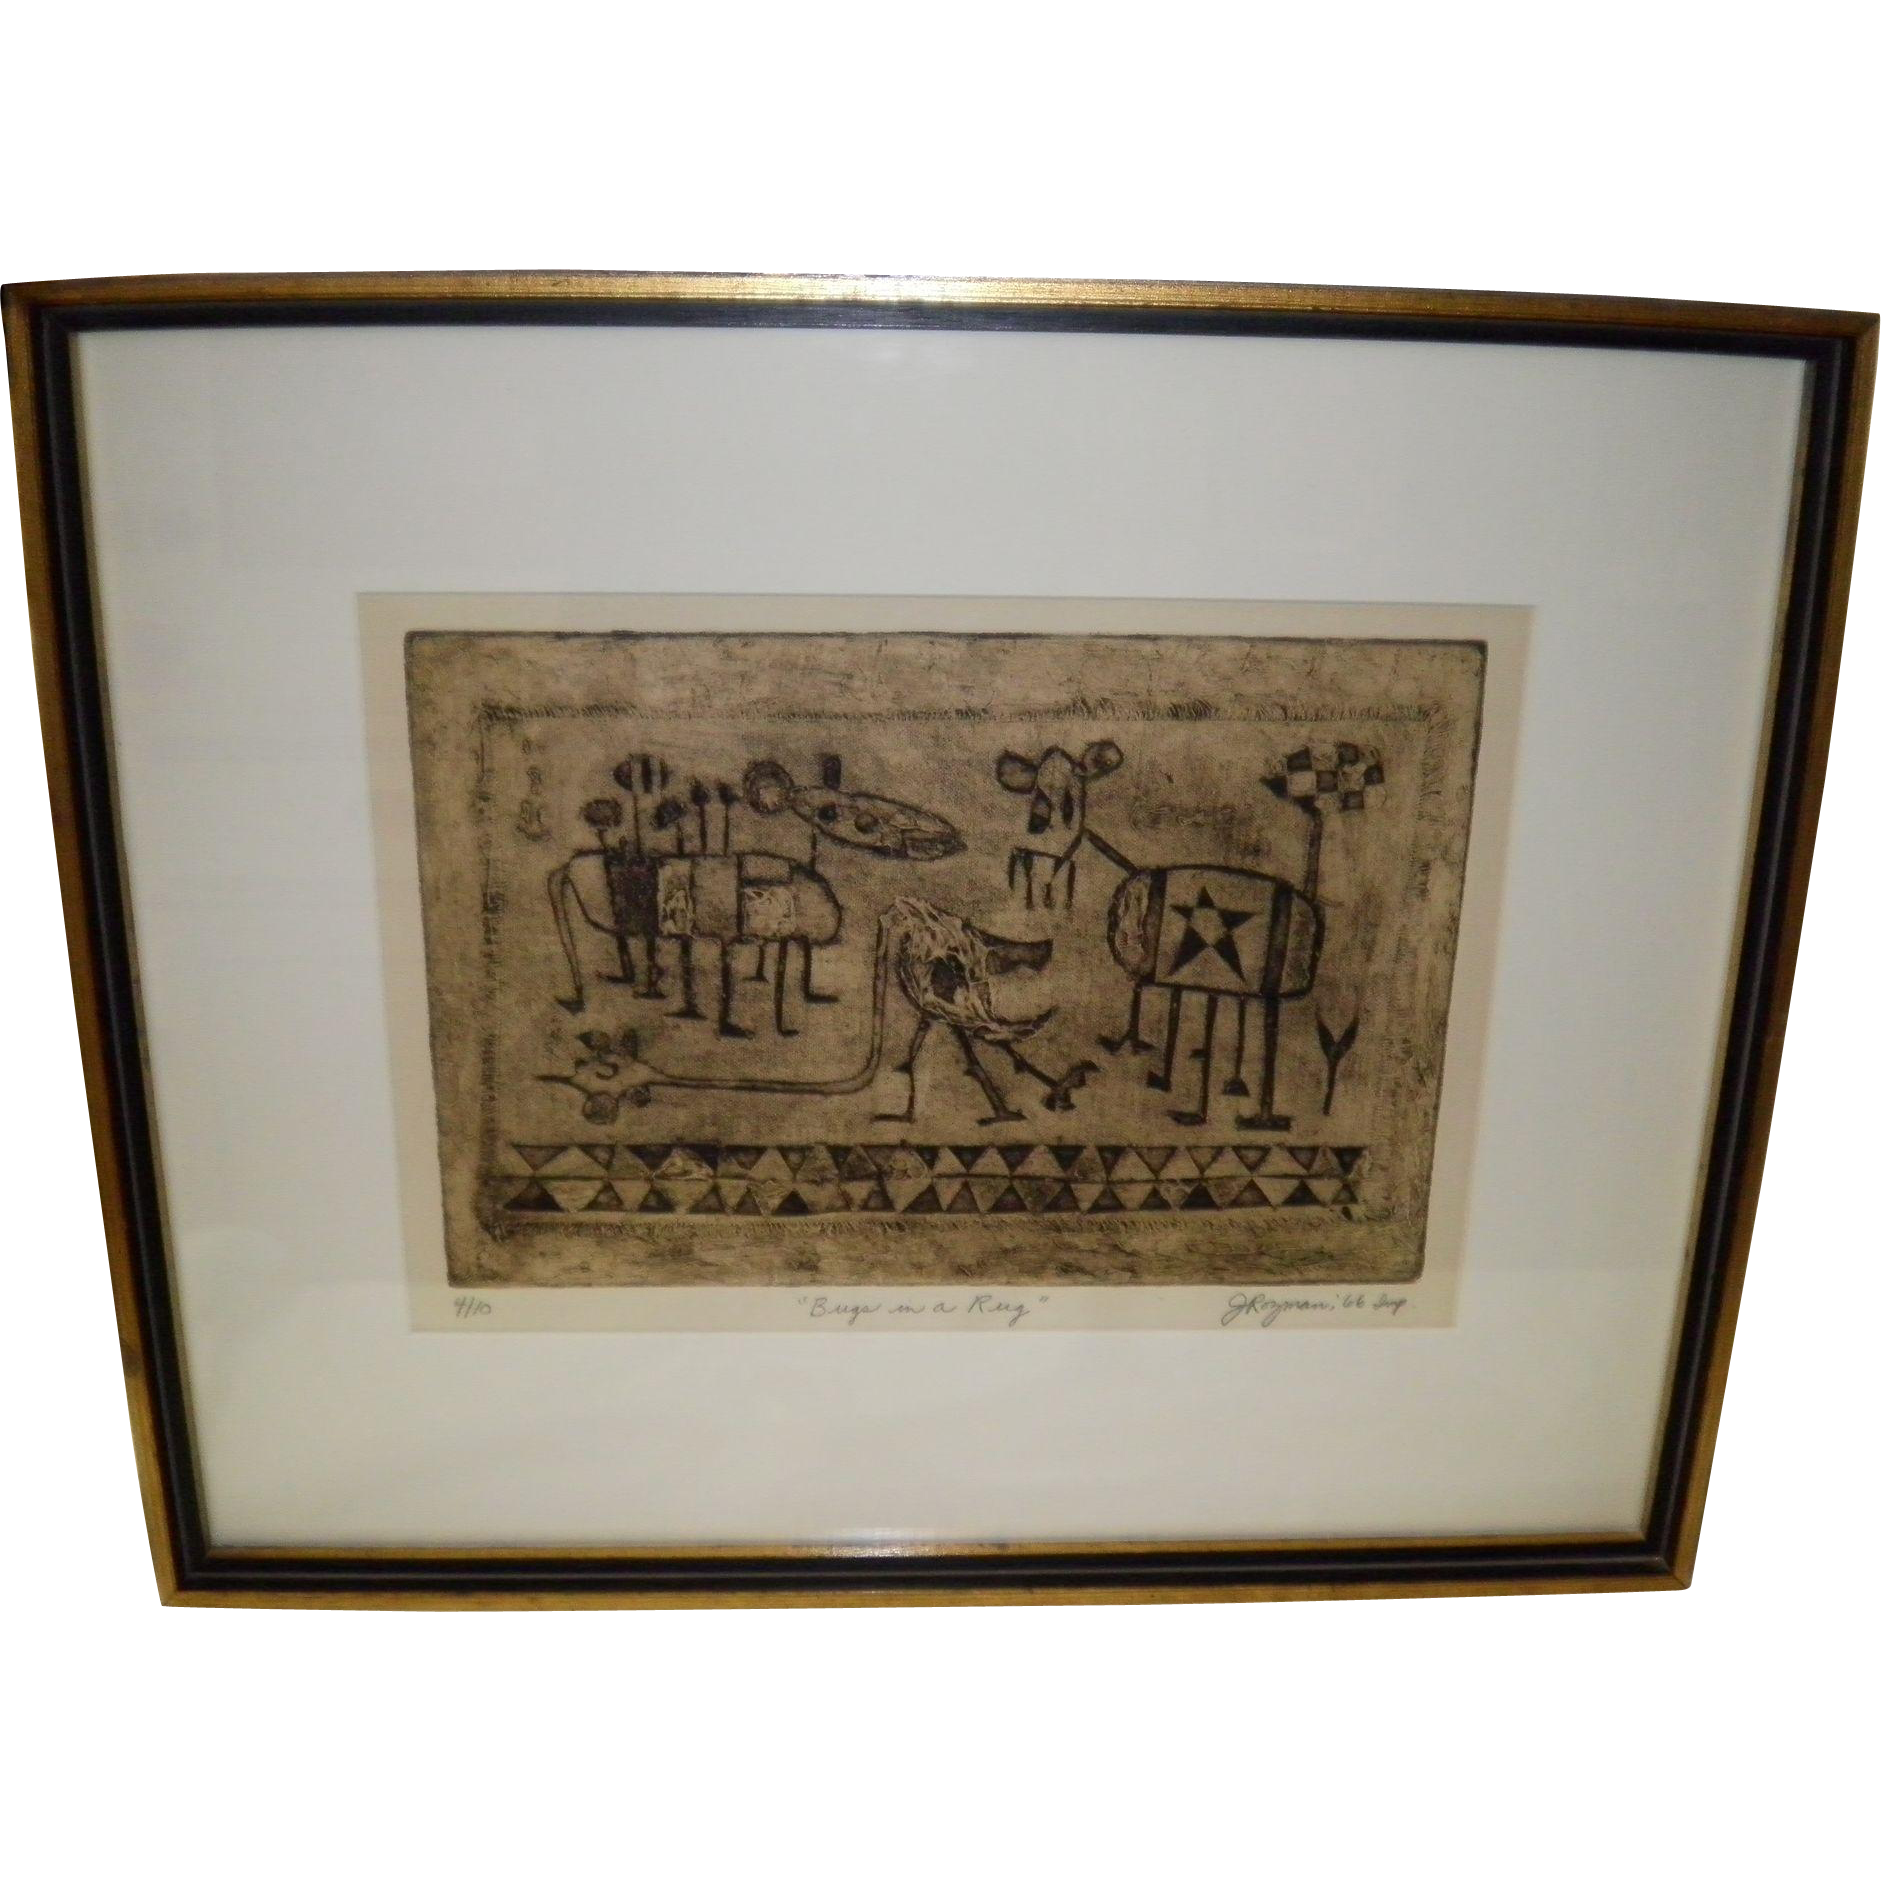 "Joseph Rozman Framed Collagraph Print Signed ""Bugs In A Rug"" 1966"